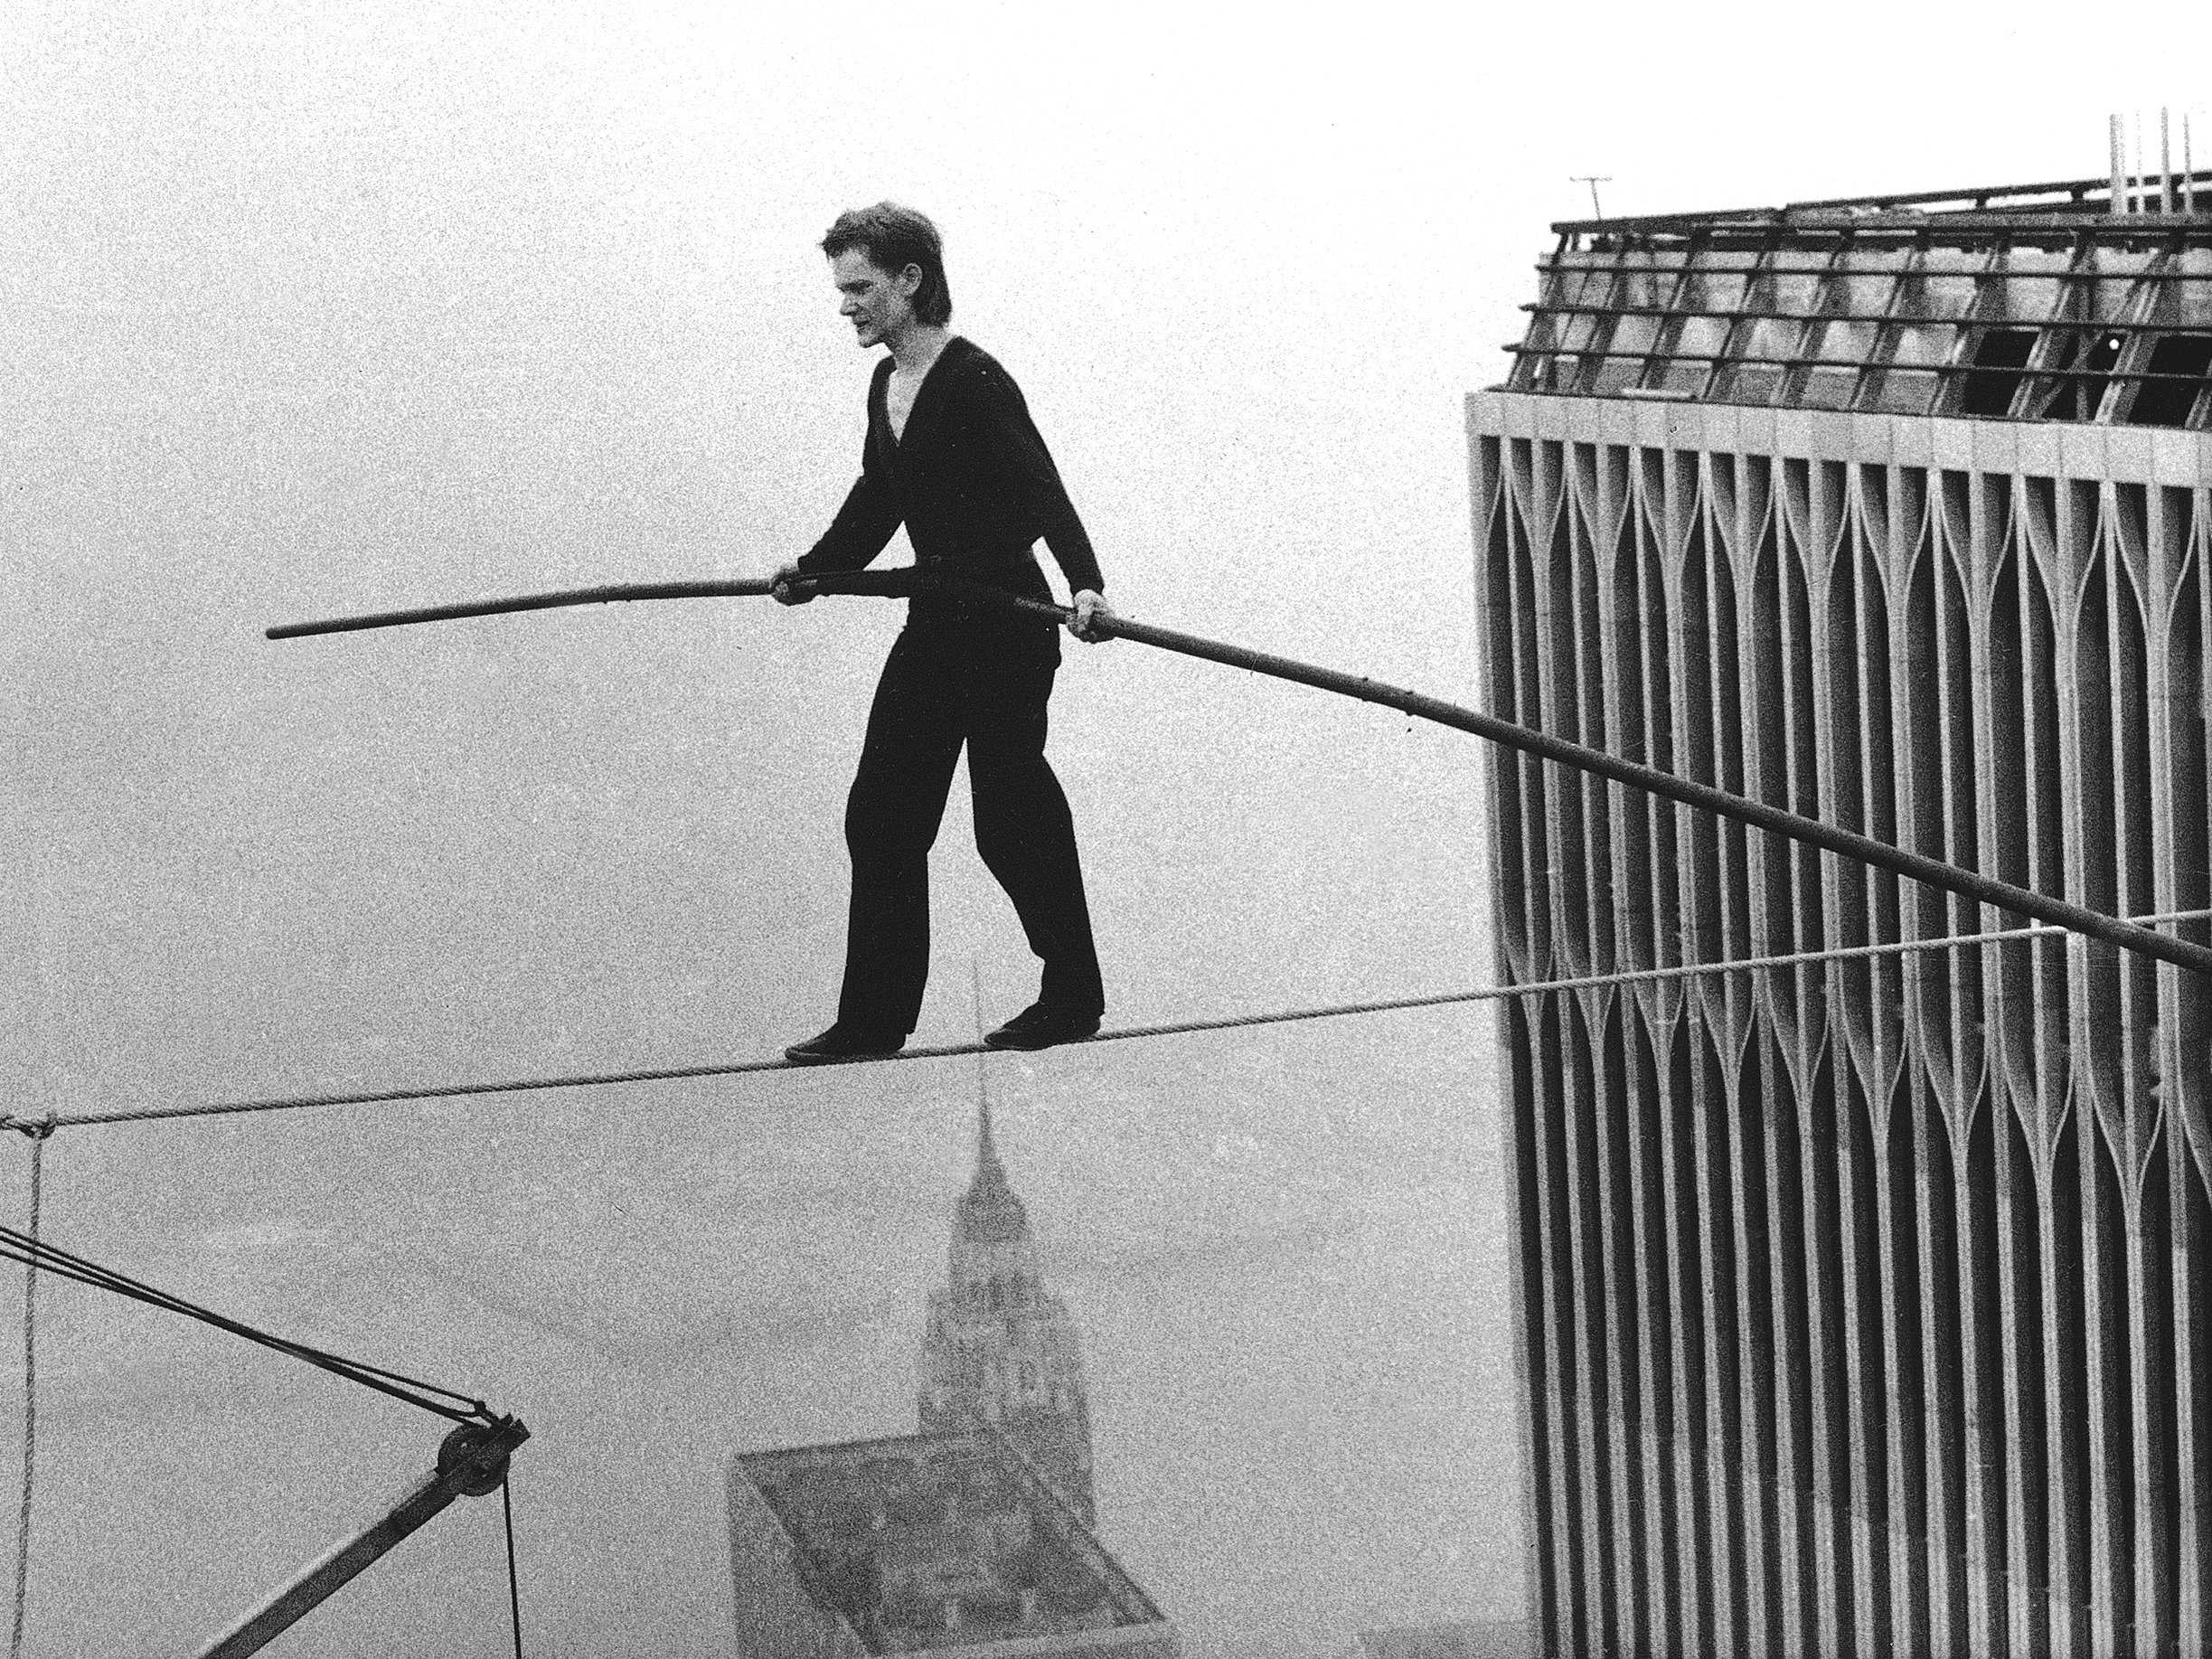 40 Years Ago Today A Frenchman Walked A Tightrope Between